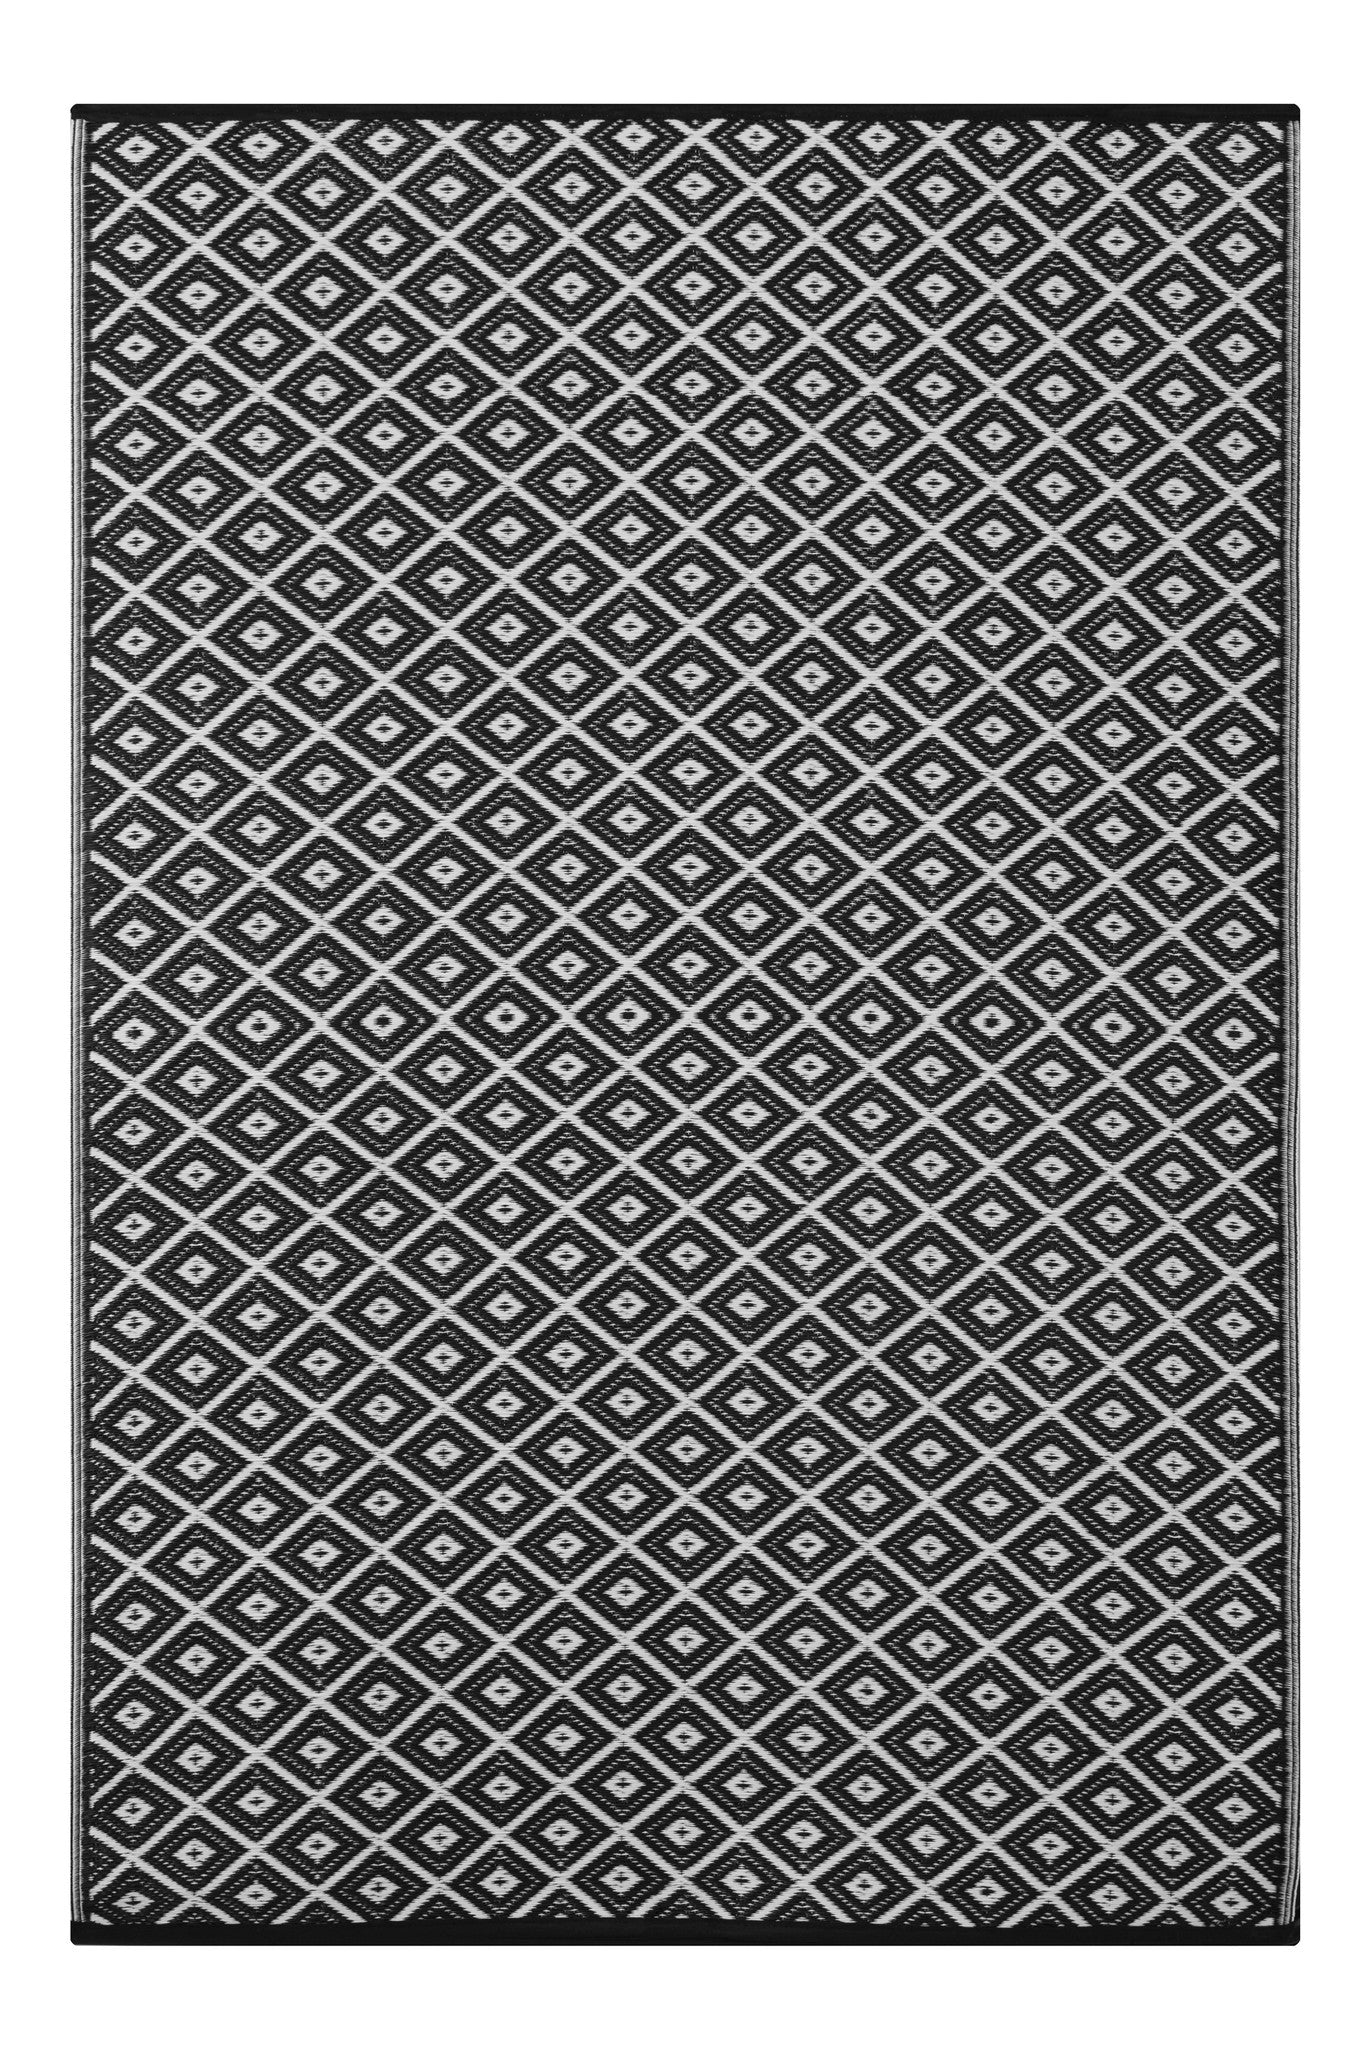 Black and white Indoor Outdoor Rug Green Decore